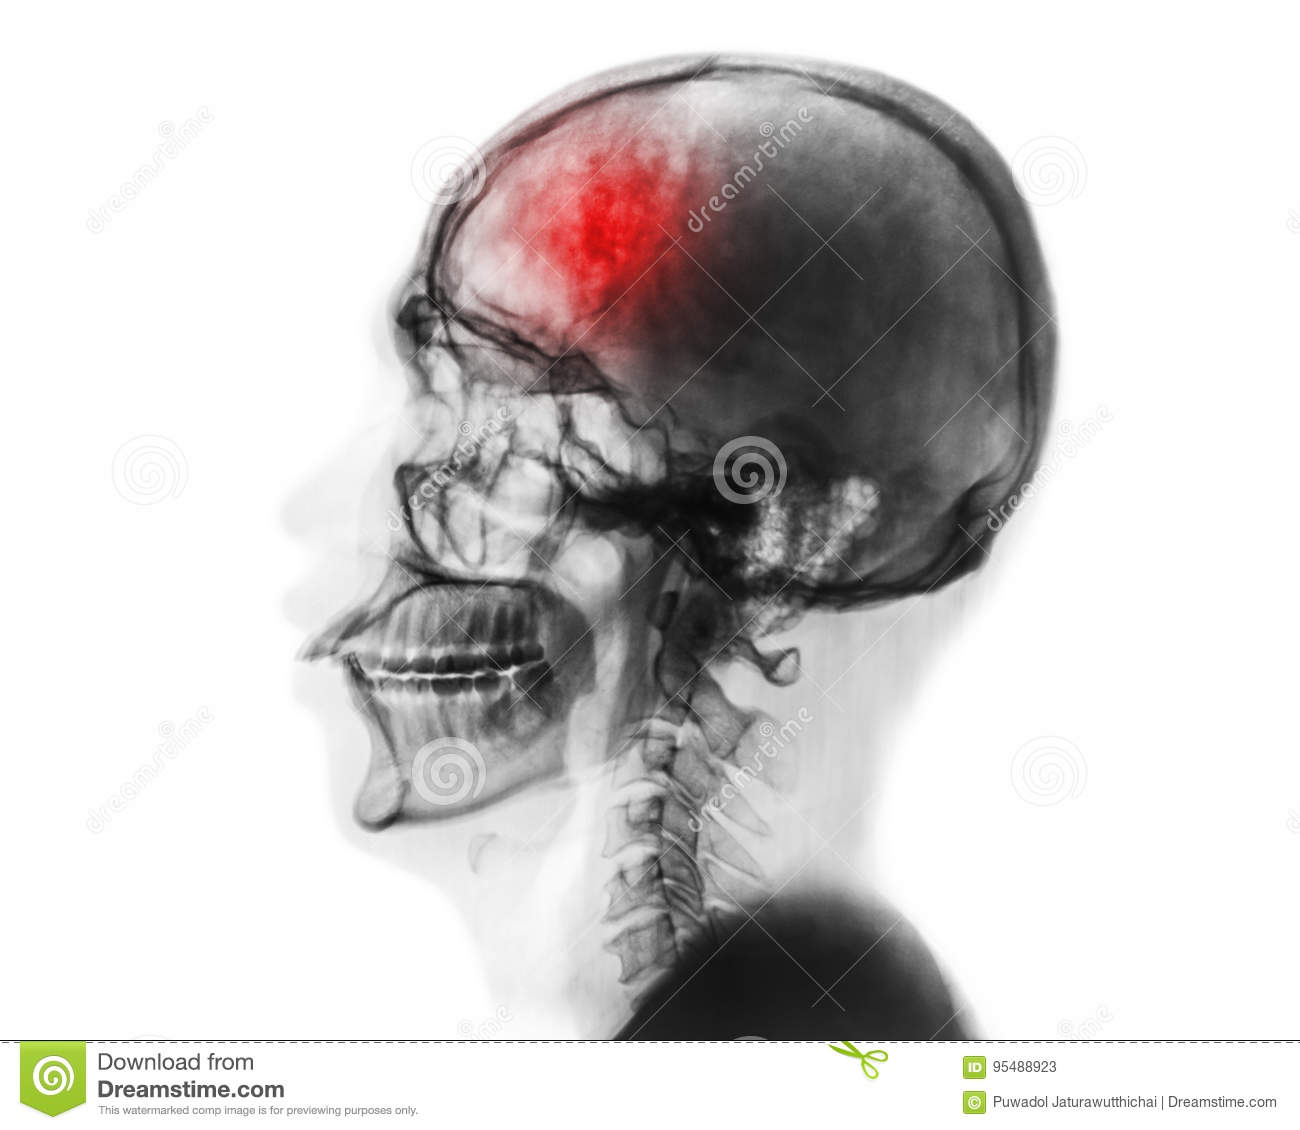 Stroke . Cerebrovascular accident . Film x-ray of human skull and cervical spine